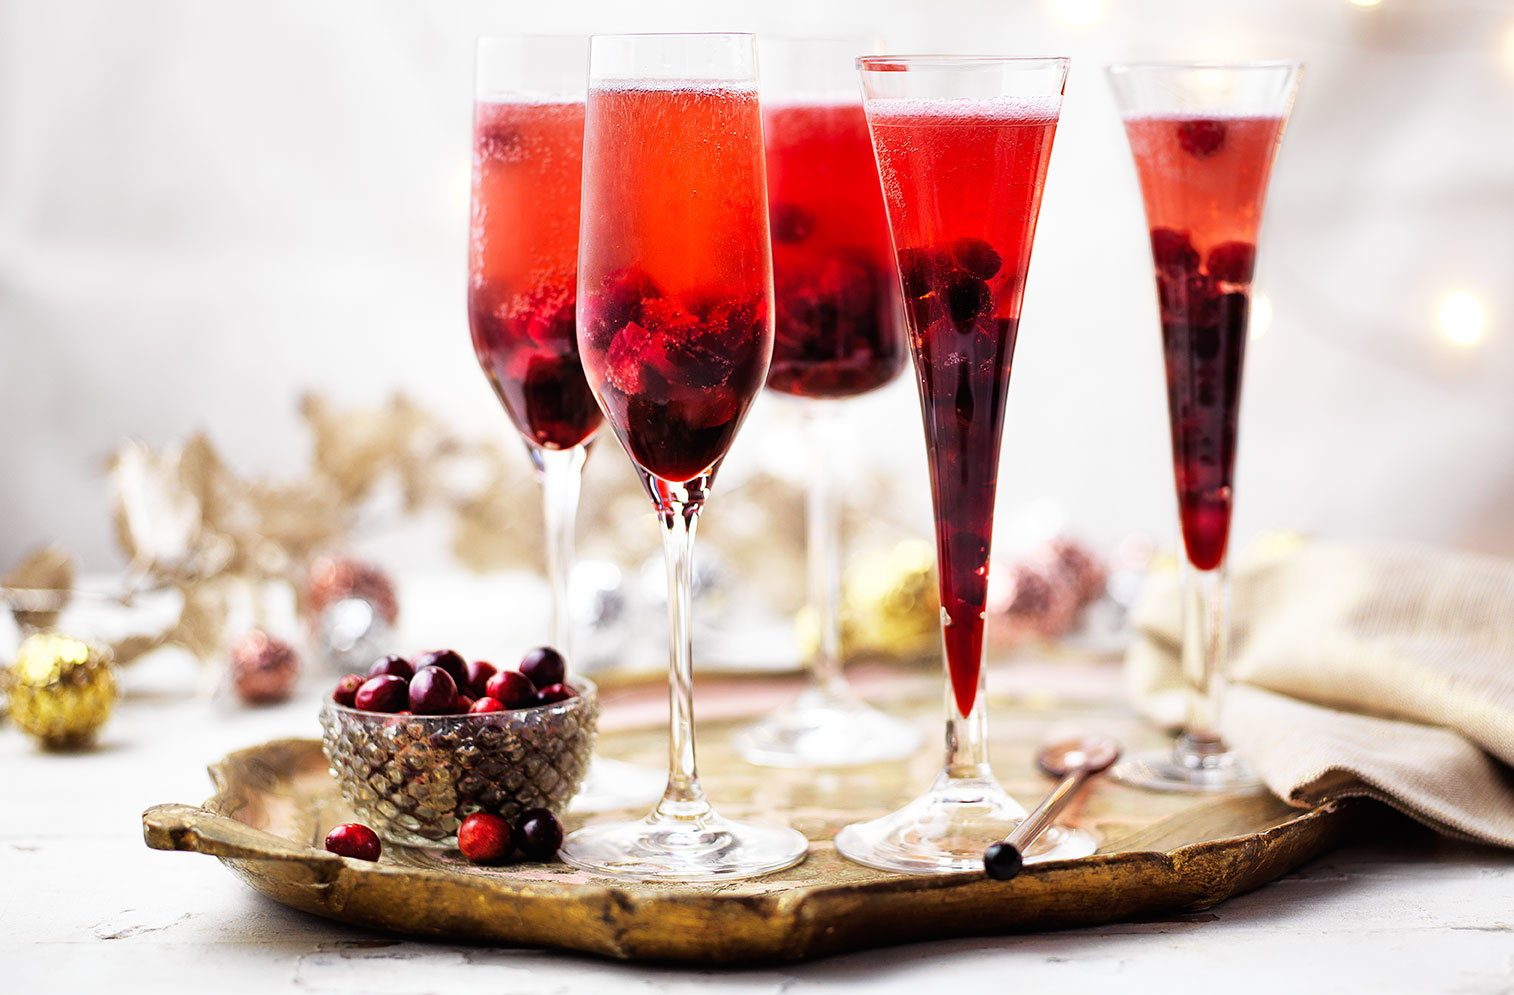 Festive fruit gives this Kir Royale an extra special twist. With a syrup made from fresh cranberries, Crème de Cassis and sugar this Champagne cocktail is the perfect Christmas party idea